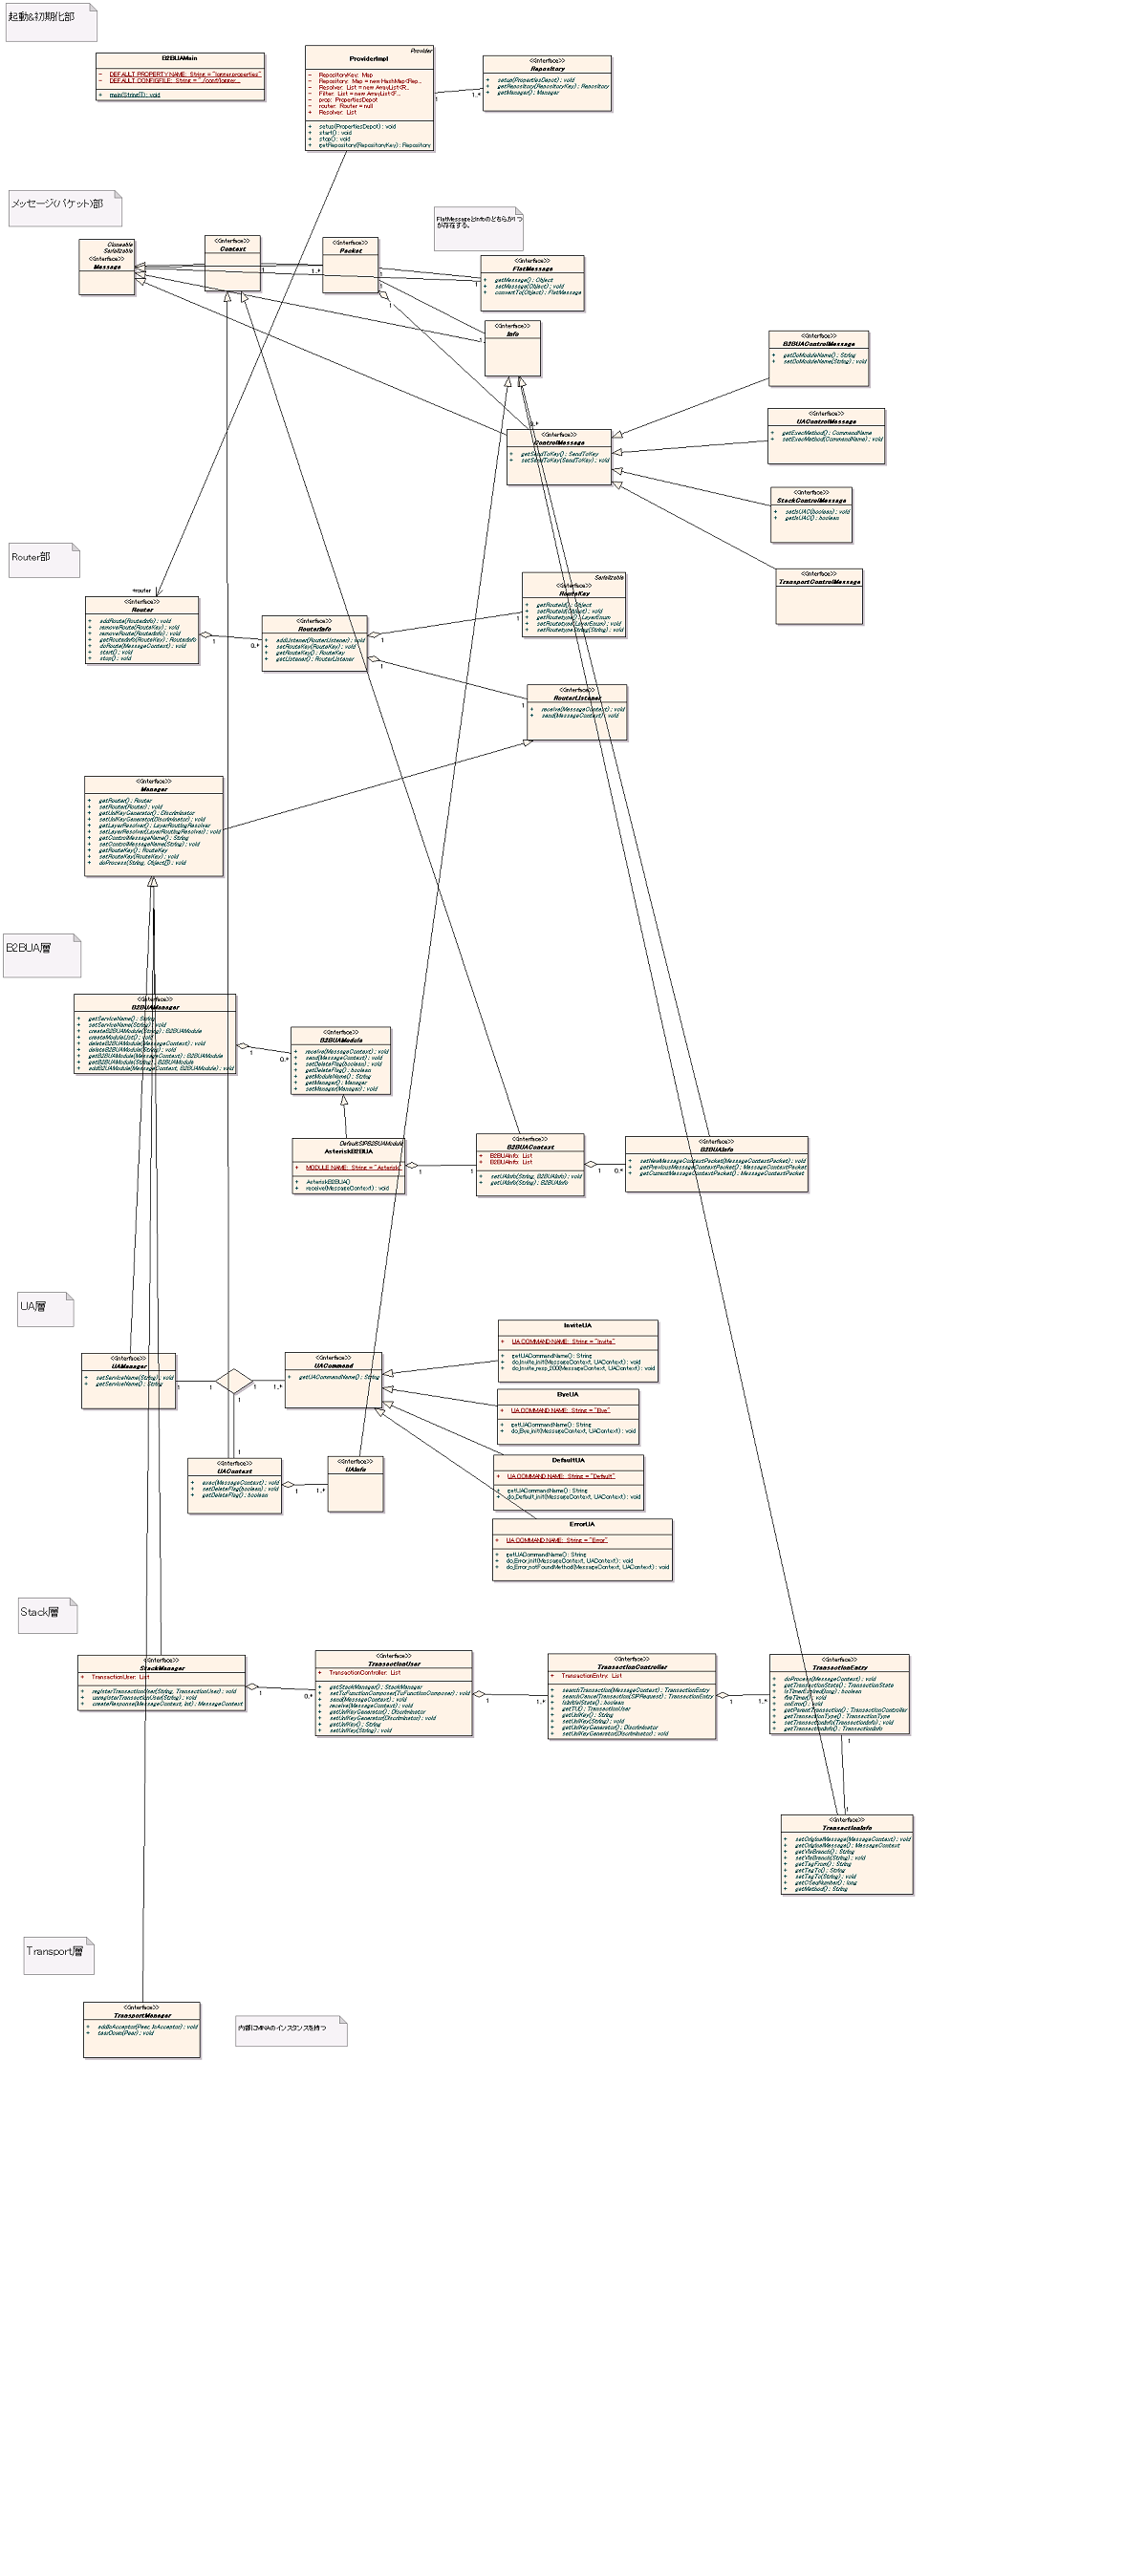 interfece_base_class_fig_s_20070918.png